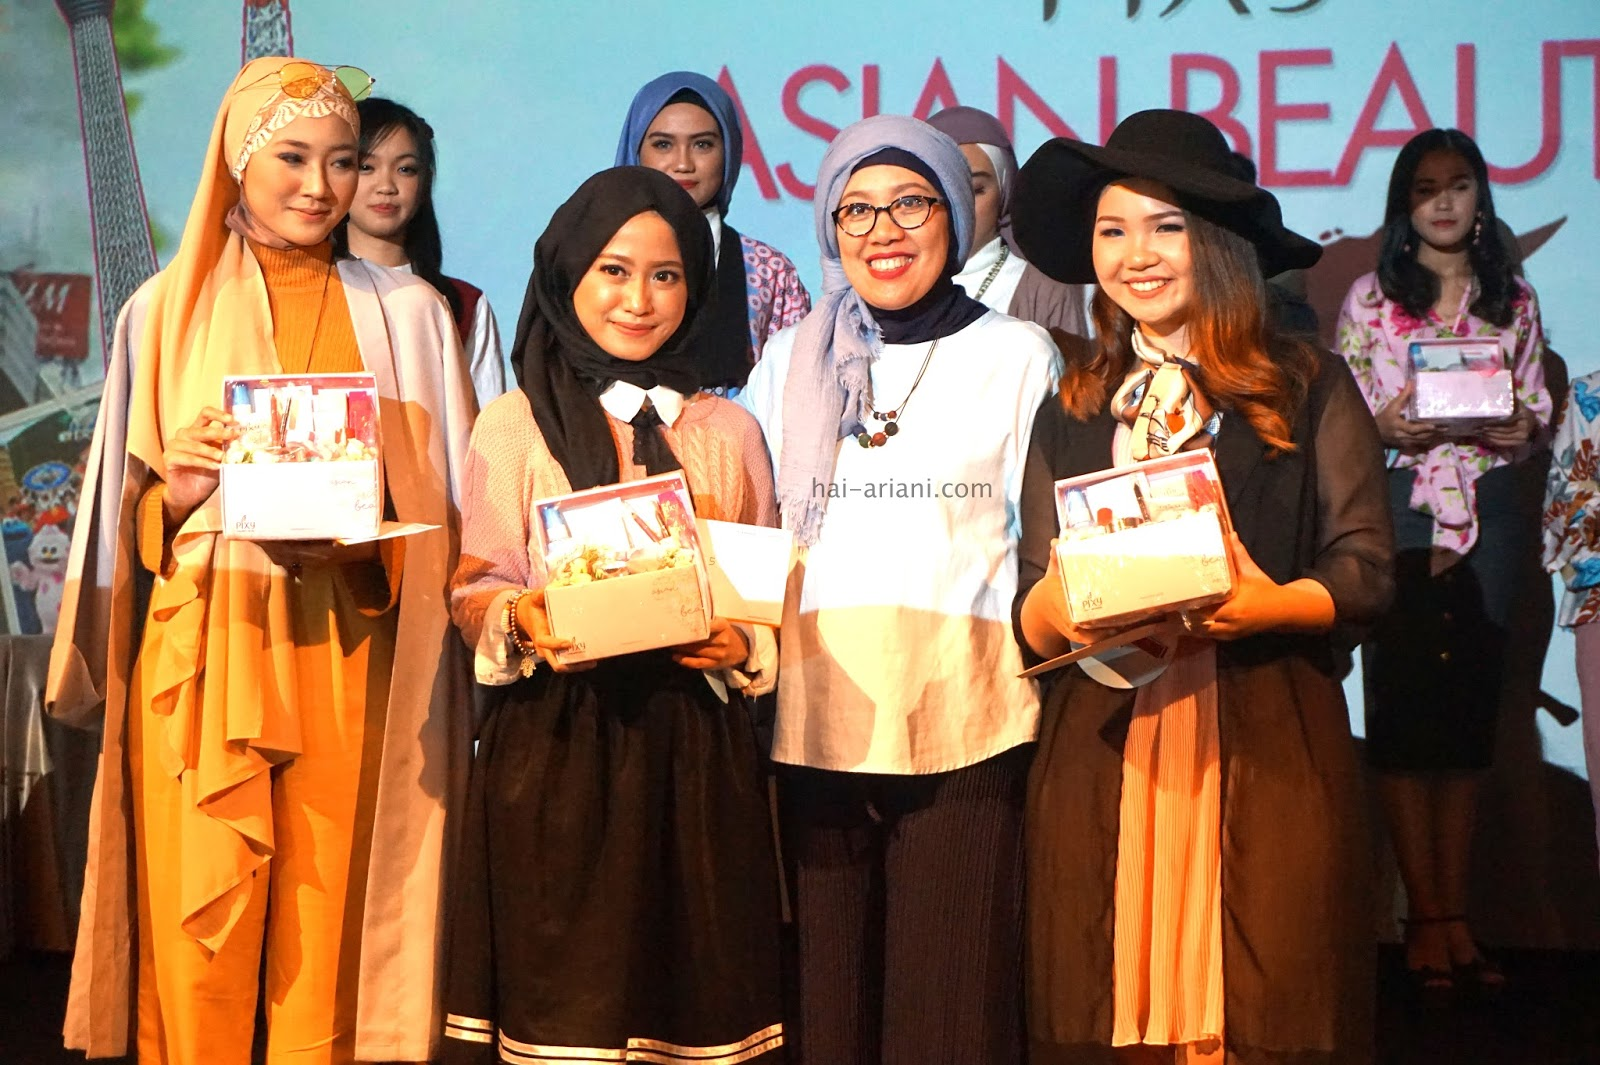 PEMENANG PIXY ASIAN BEAUTY TRIP 2017